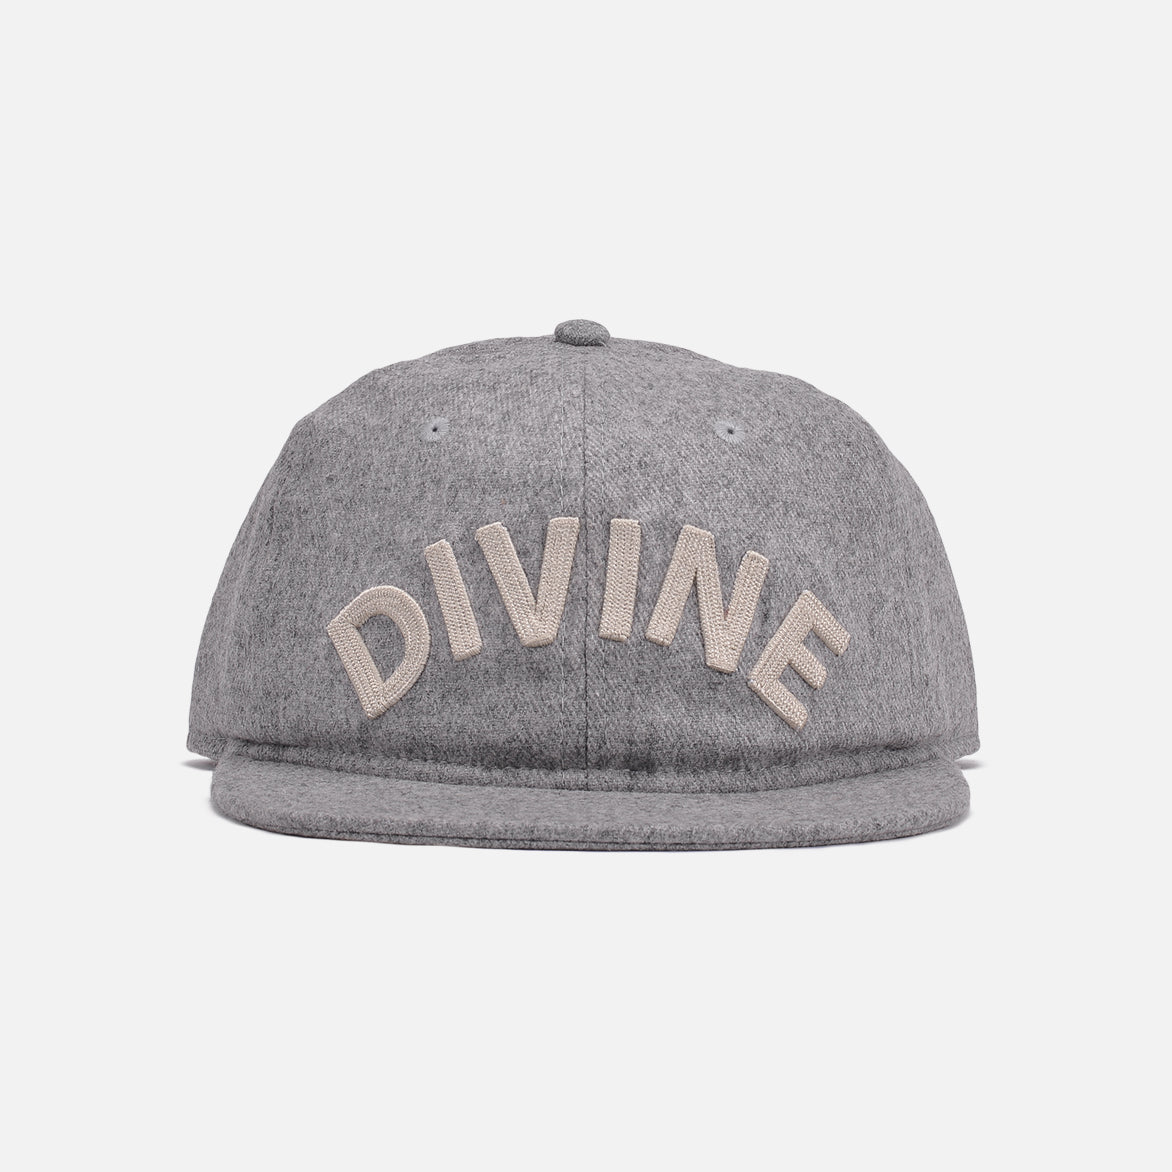 4026cbbb93e DIVINE WOOL HAT - GREY